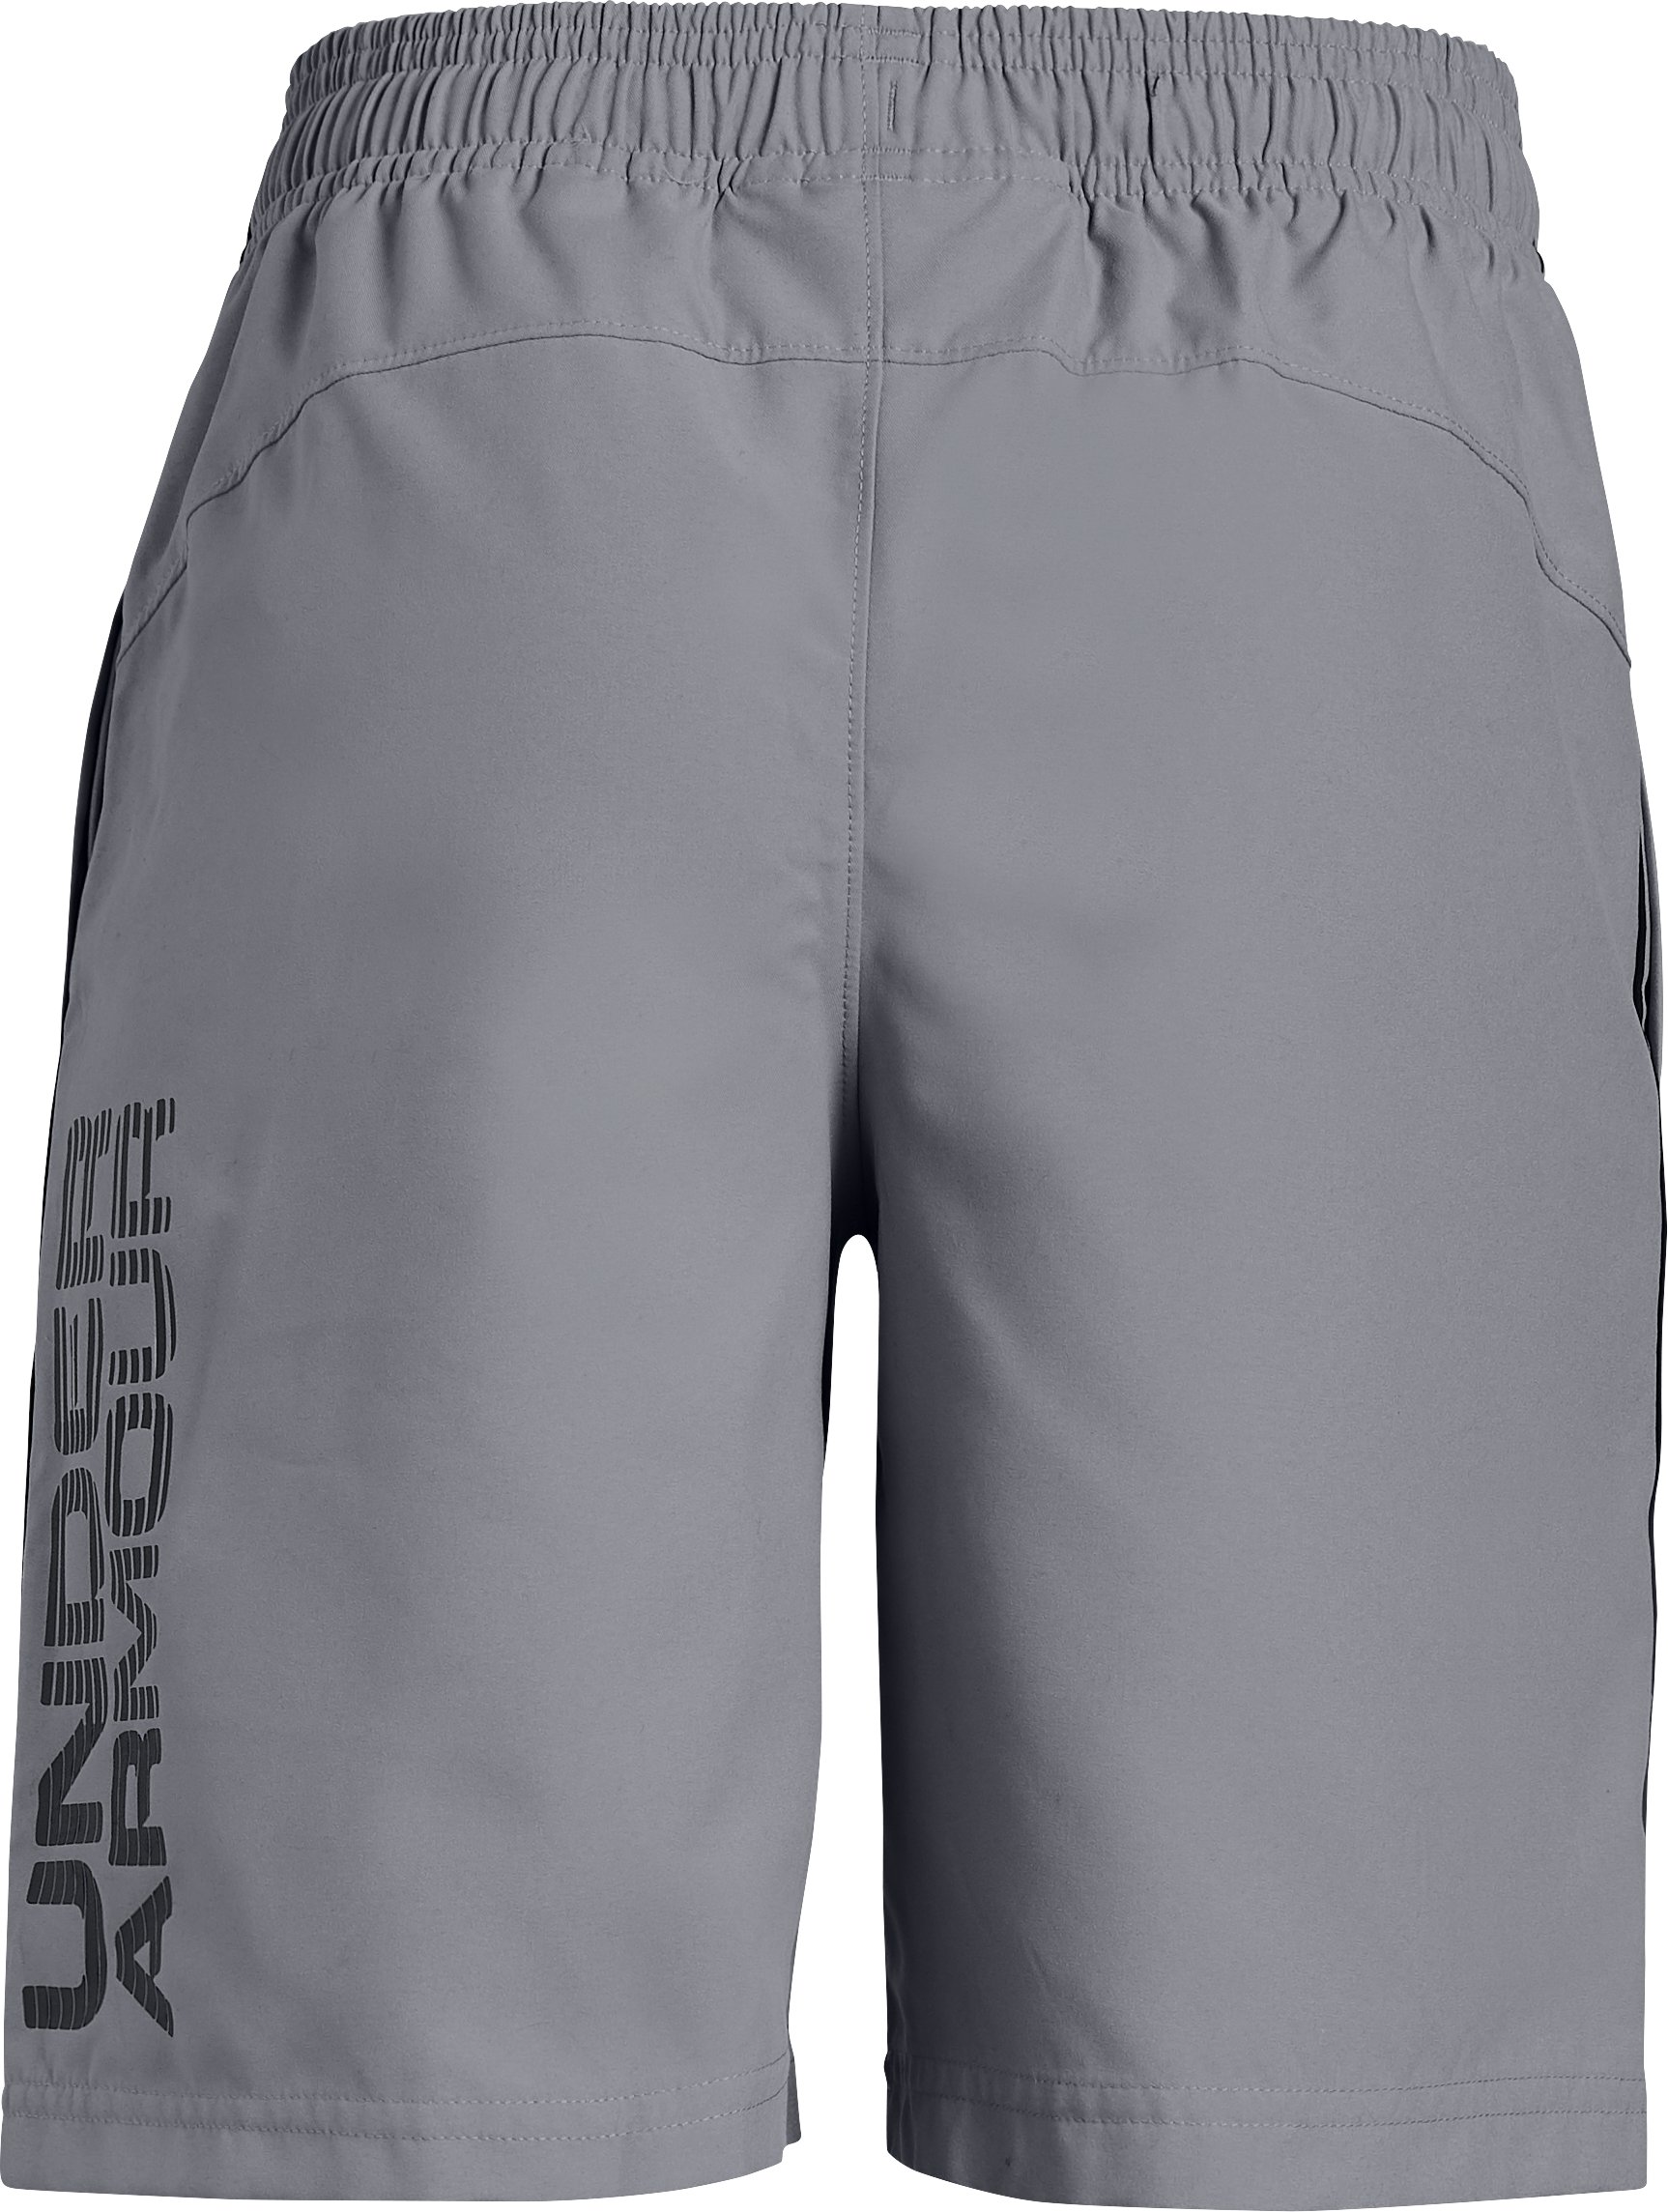 Boys' UA Woven Graphic Shorts, Steel,